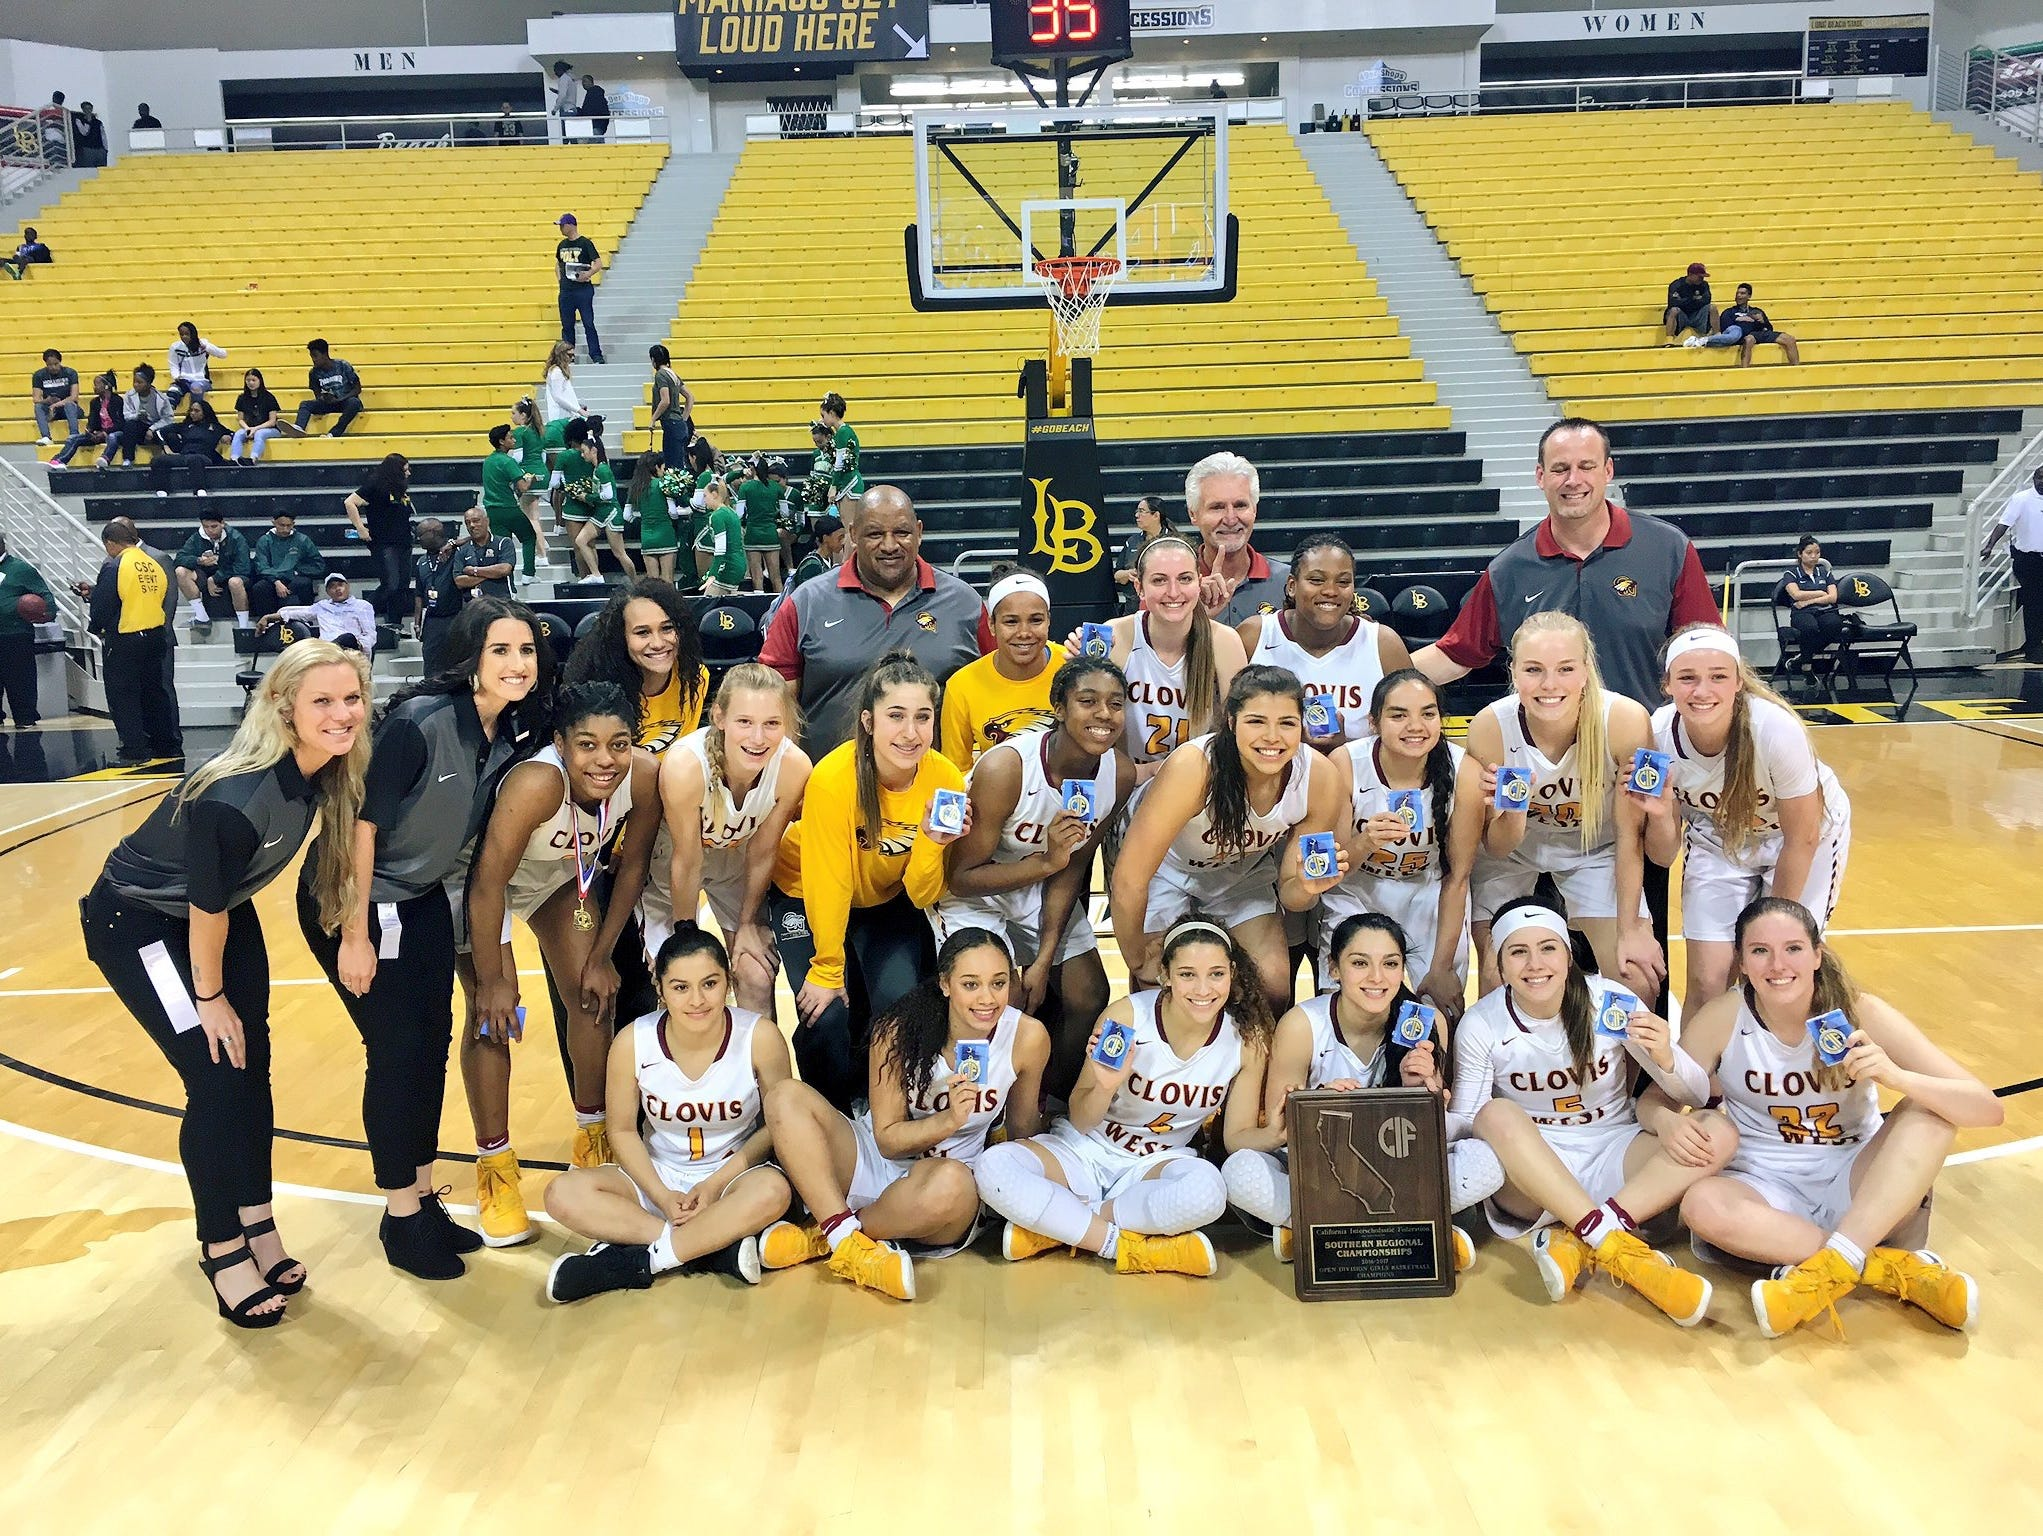 The Clovis West girls basketball team, coached by Craig Campbell, after winning the Southern California Regional last Saturday.